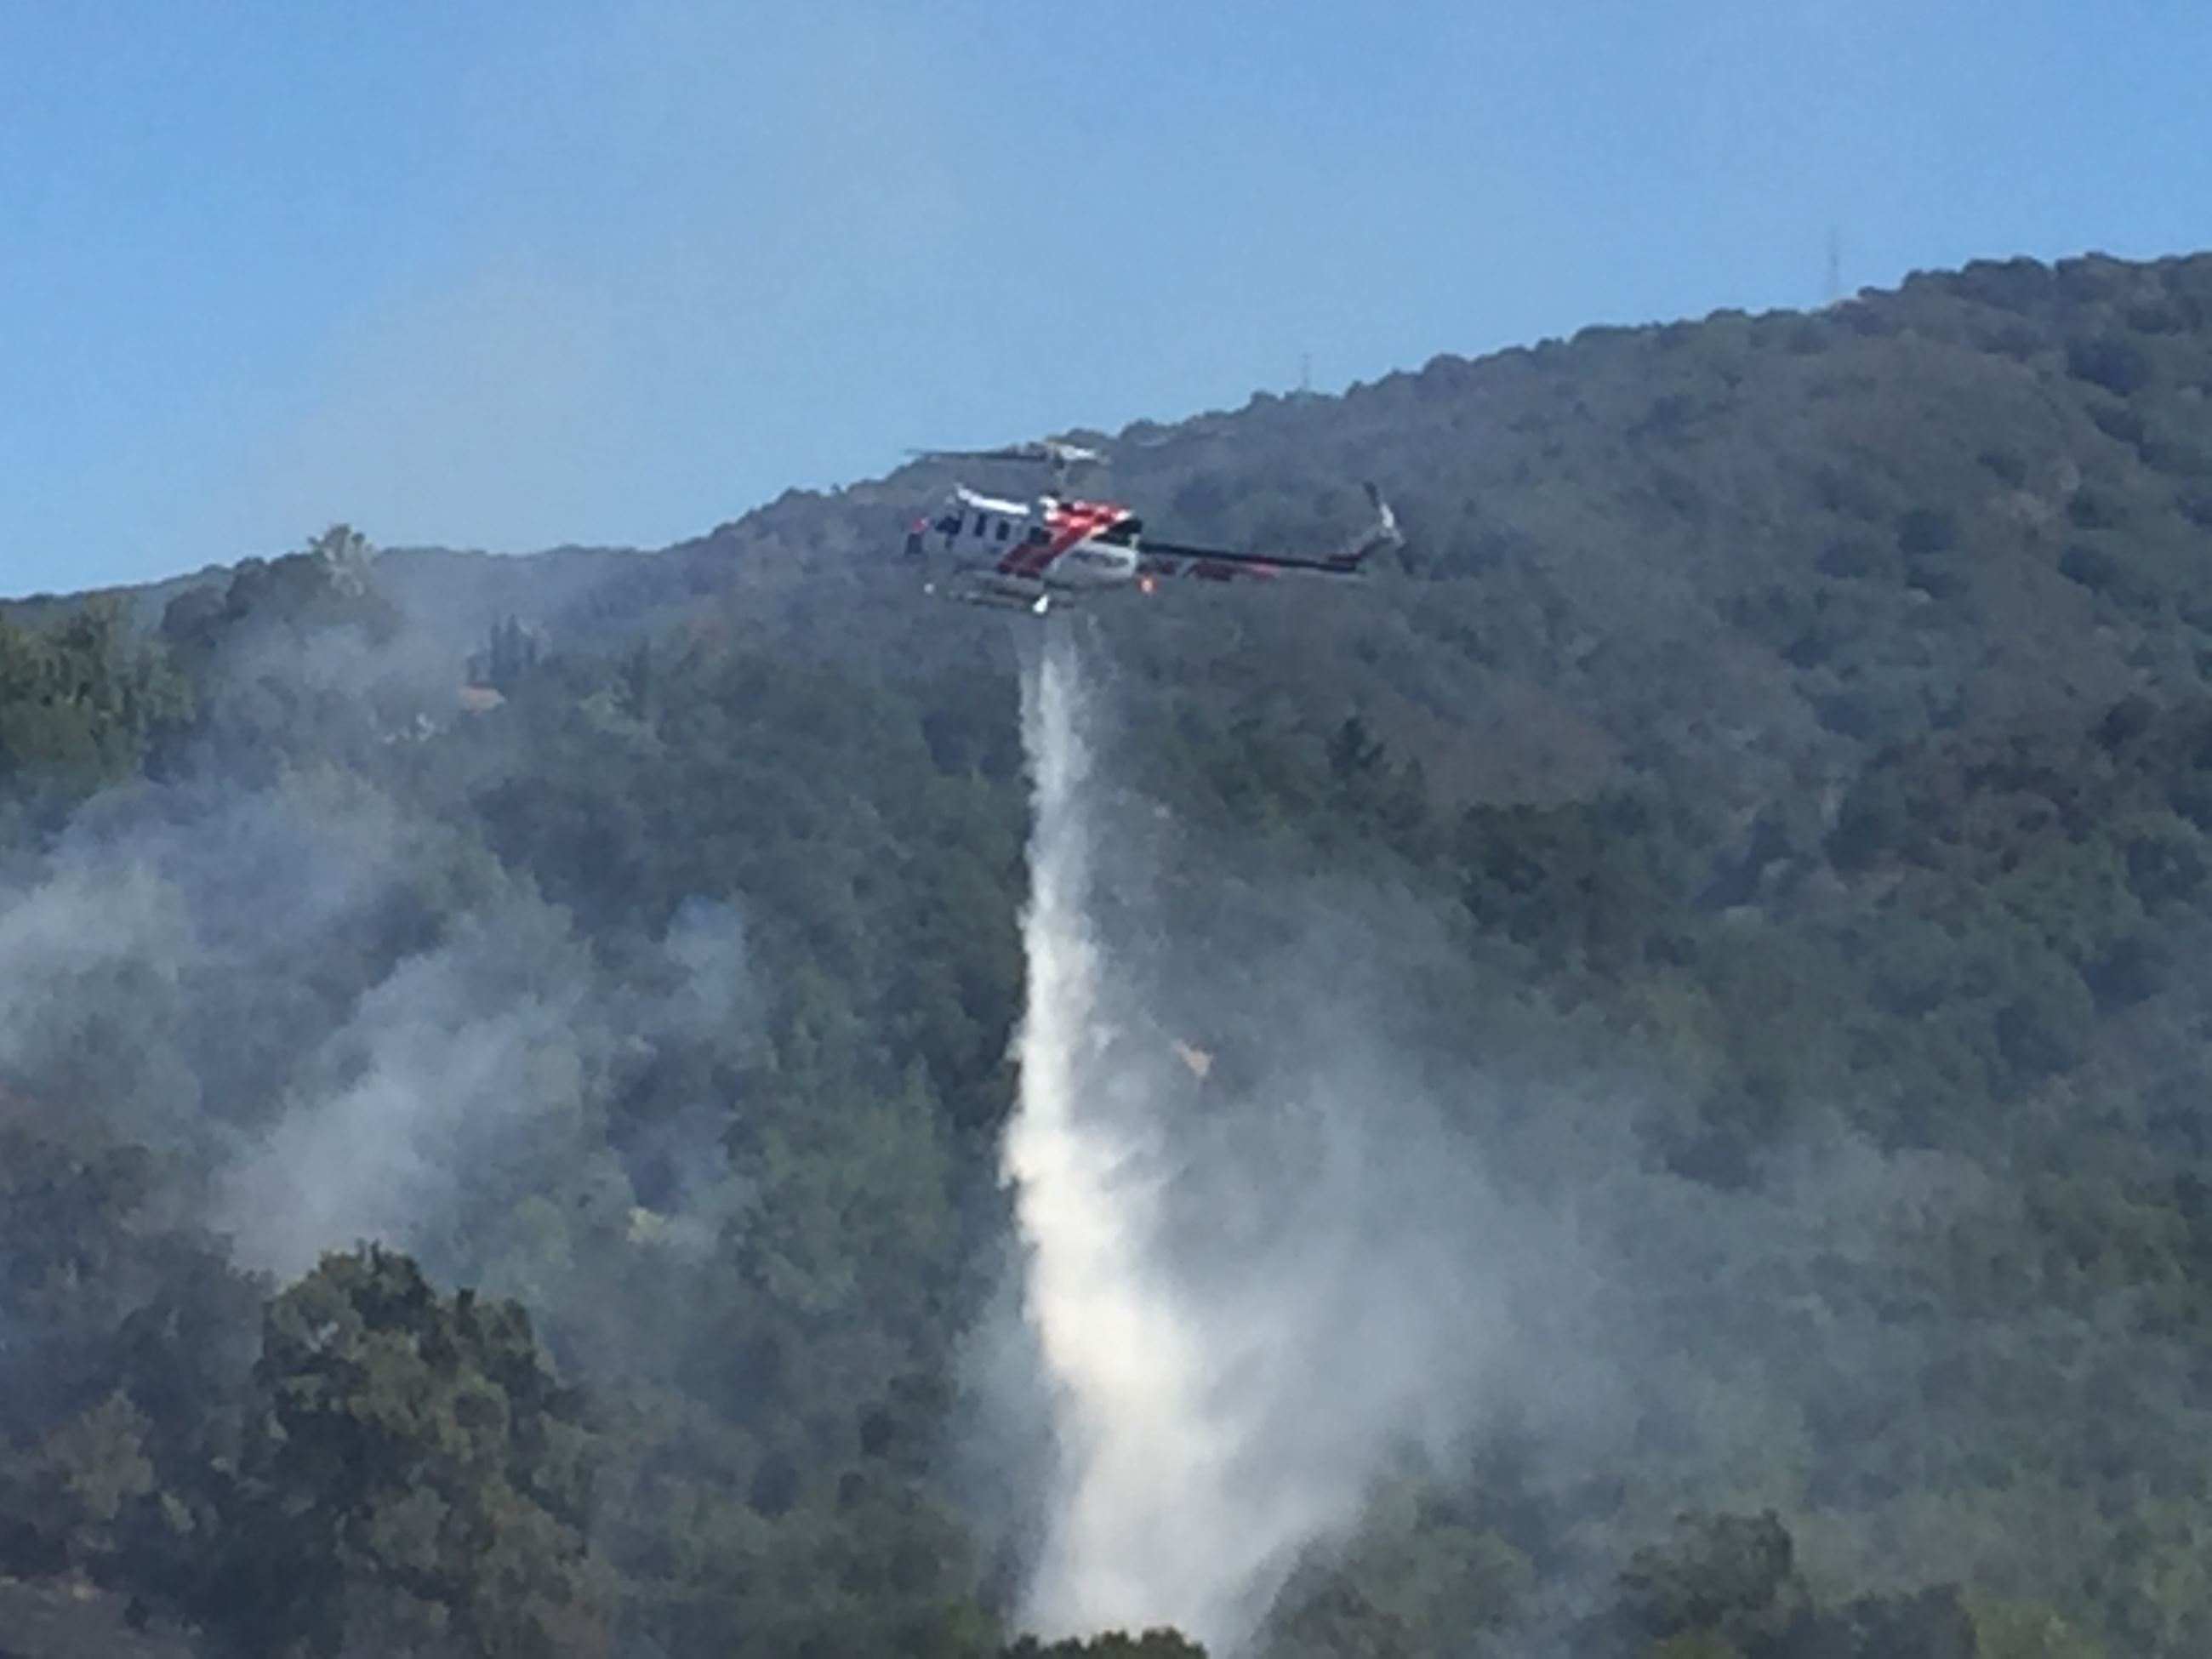 Helicopter Dropping Fire Retardant